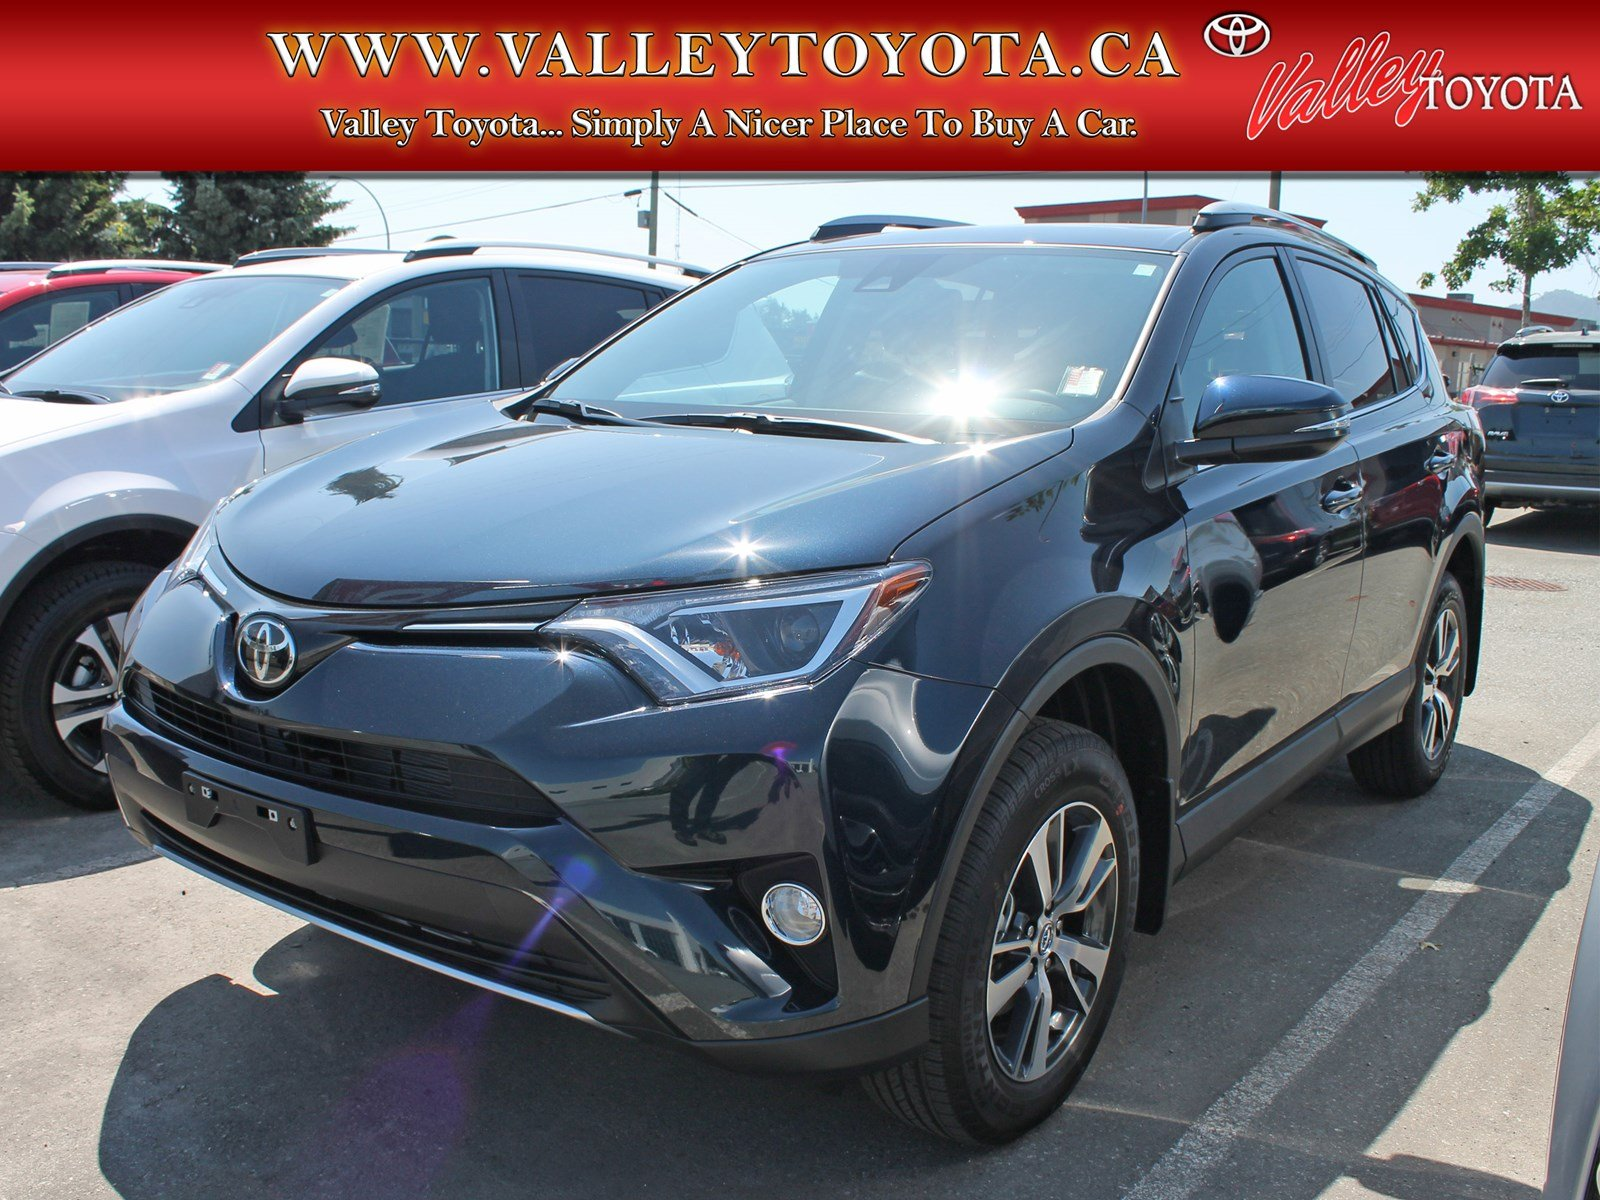 new 2017 toyota rav4 xle fwd sport utility in chilliwack vw17215 valley toyota. Black Bedroom Furniture Sets. Home Design Ideas